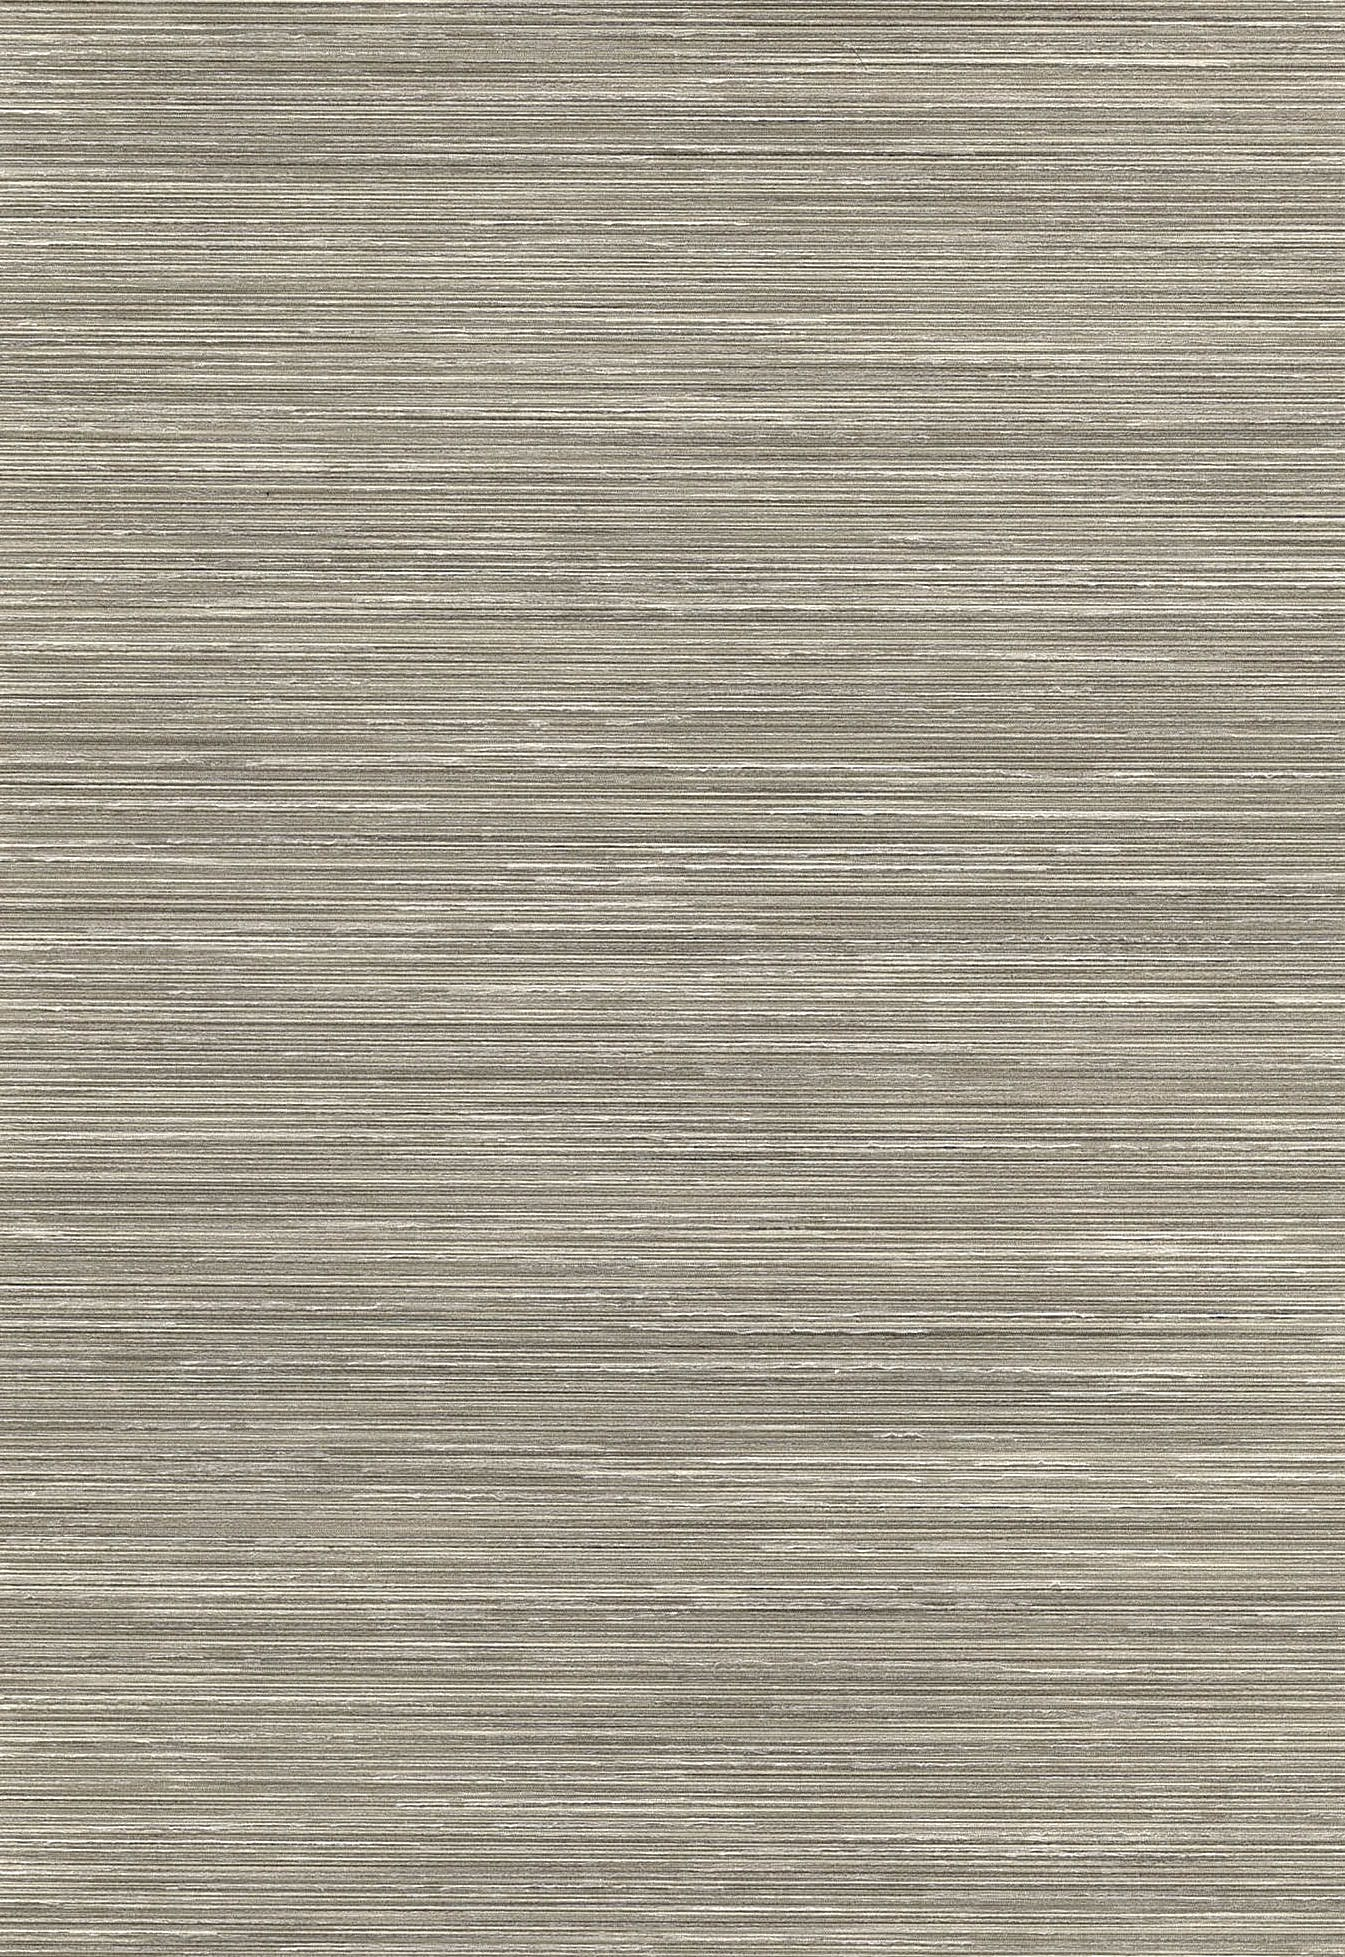 Valencia Golden Linear Vinyl Flooring Click Tile - 1.48 sqm / Box